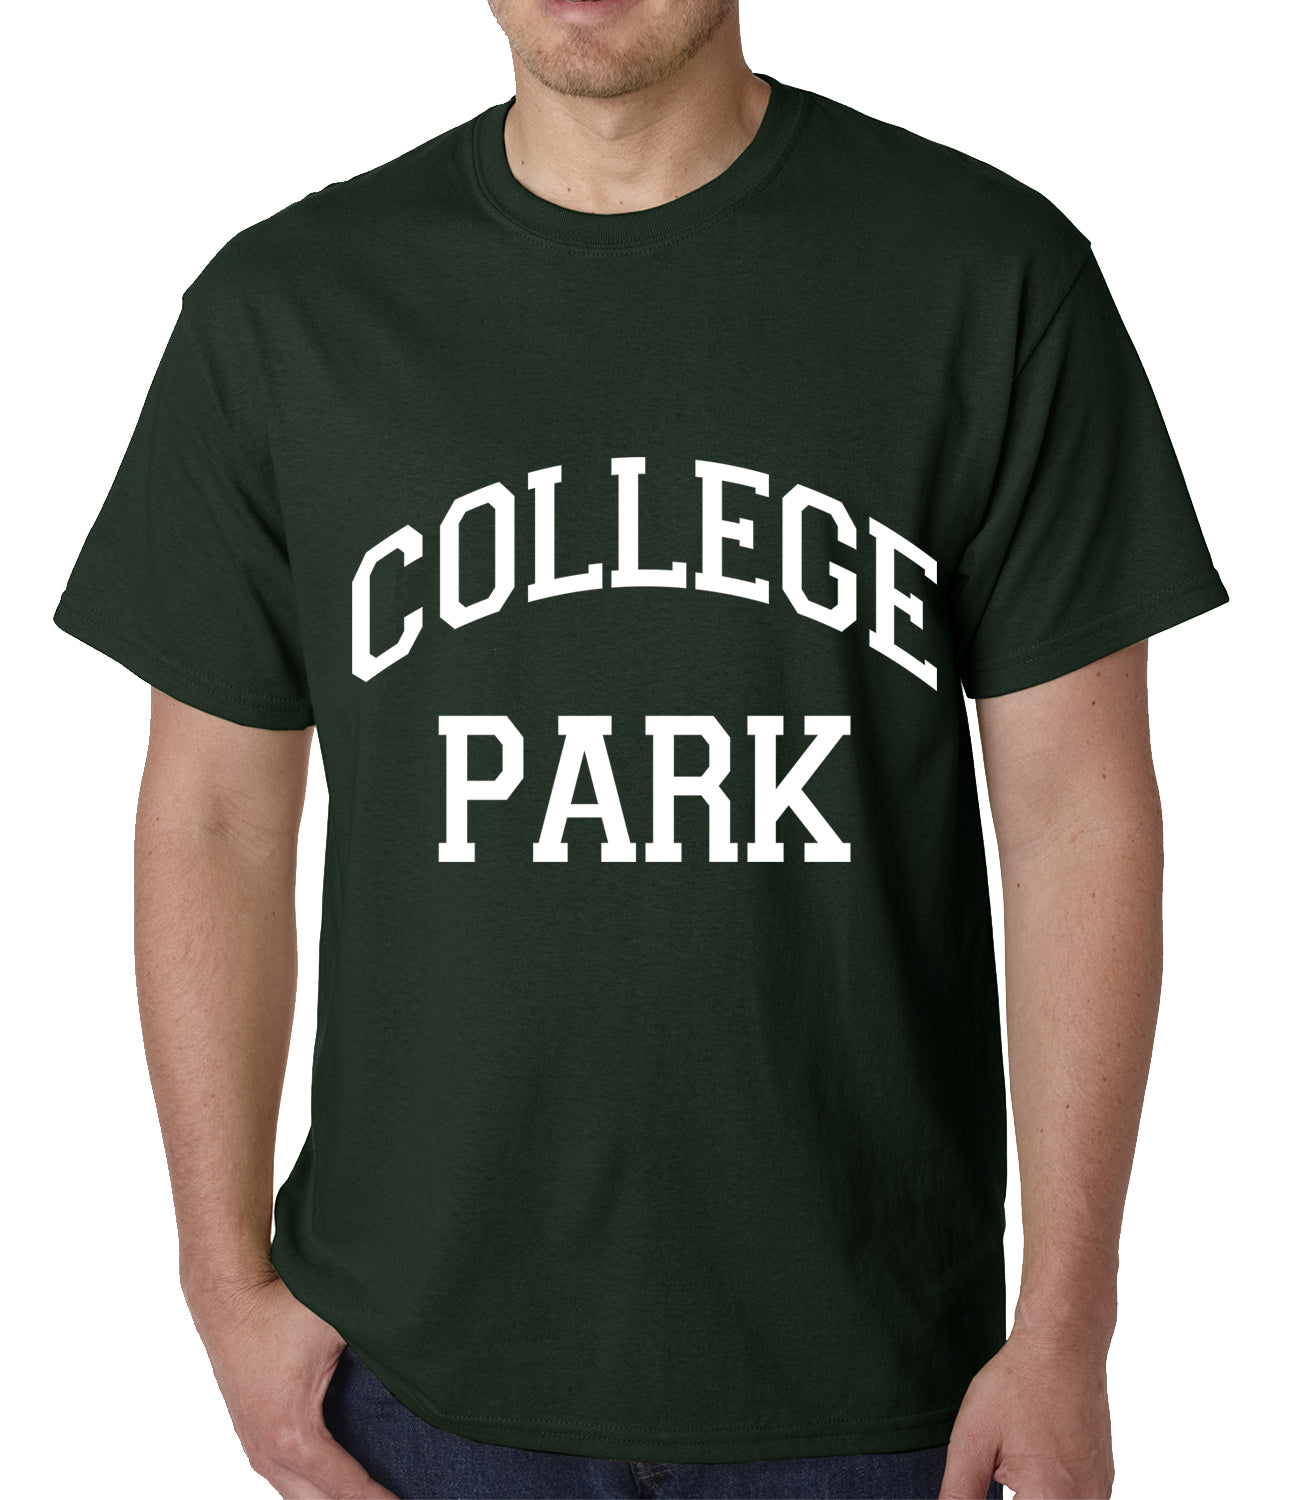 College Park Brooklyn Mens T-shirt